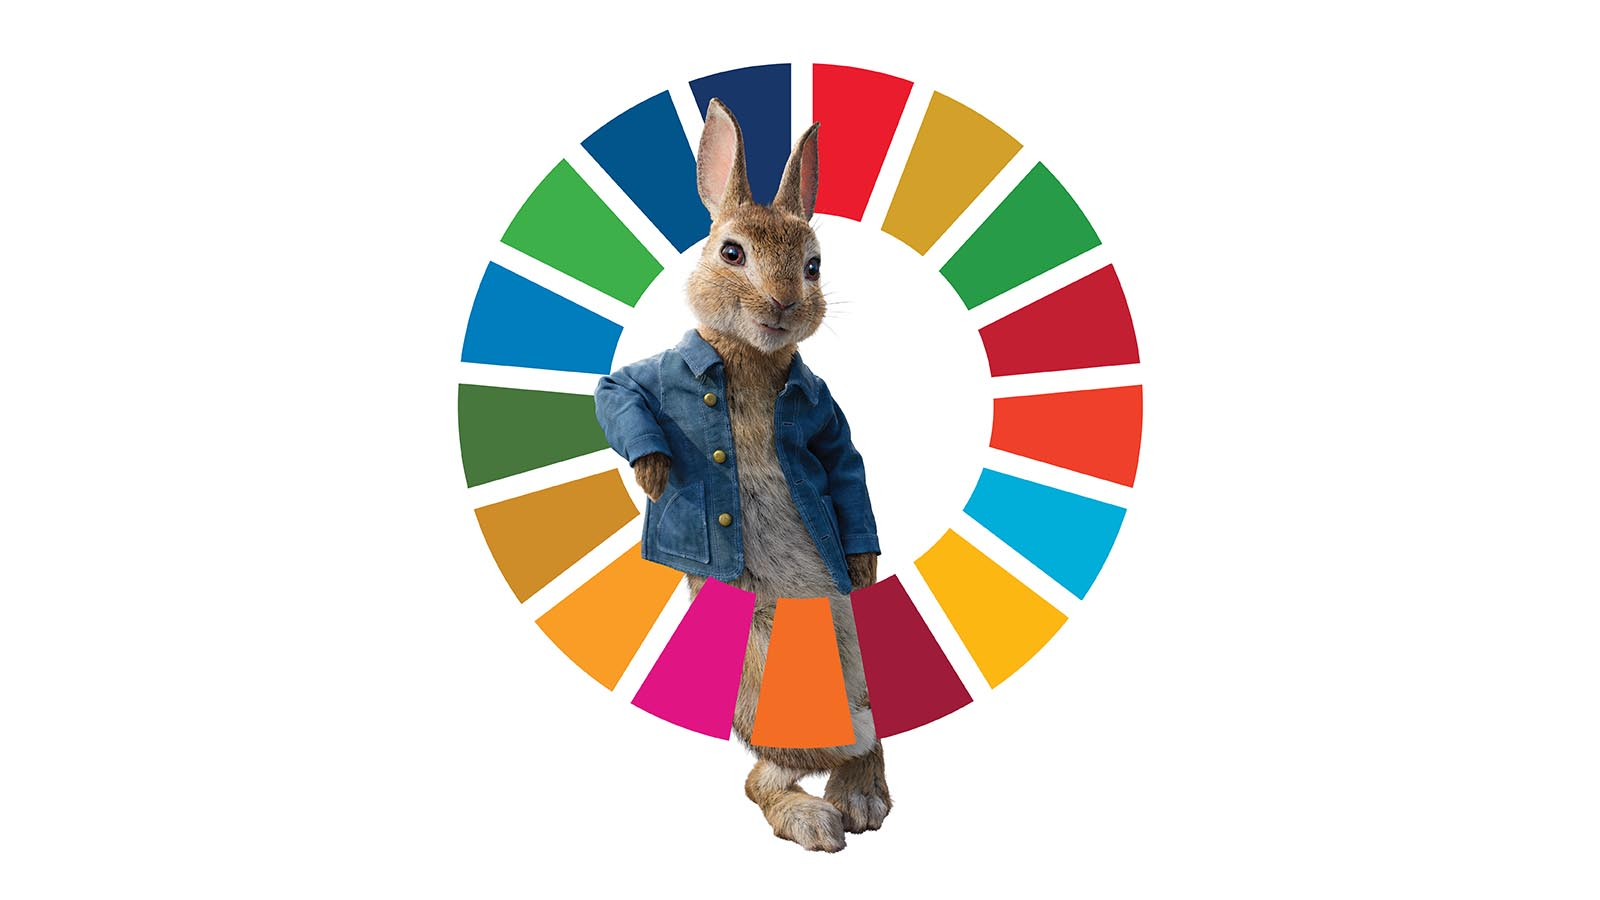 Animated 3D rabbit poses in front of SDG wheel